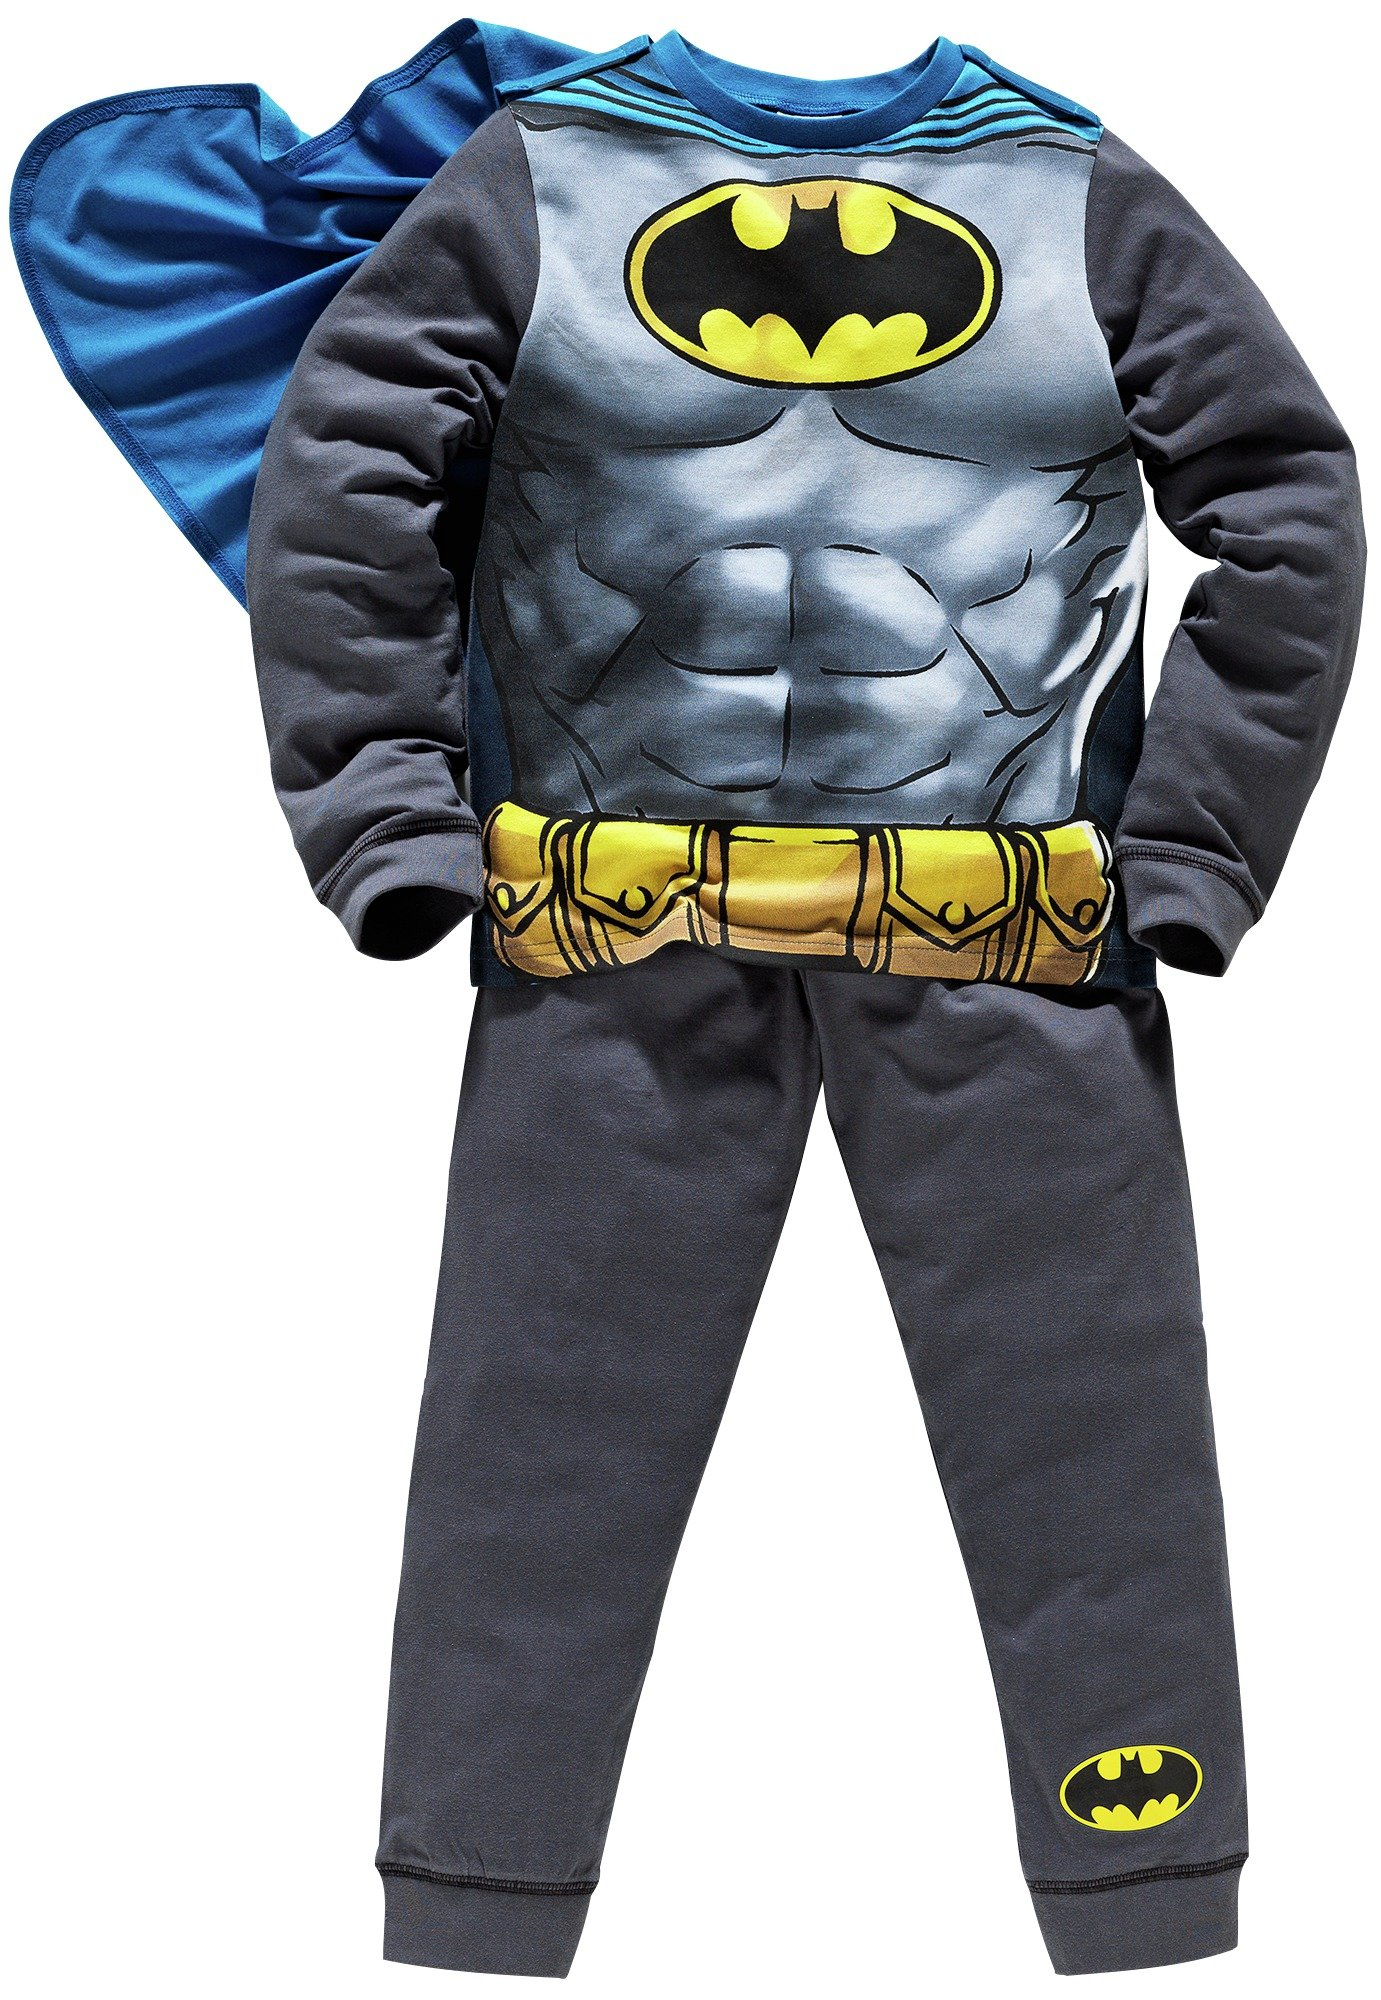 Image of Batman Novelty Pyjamas with Cape - 5-6 Years